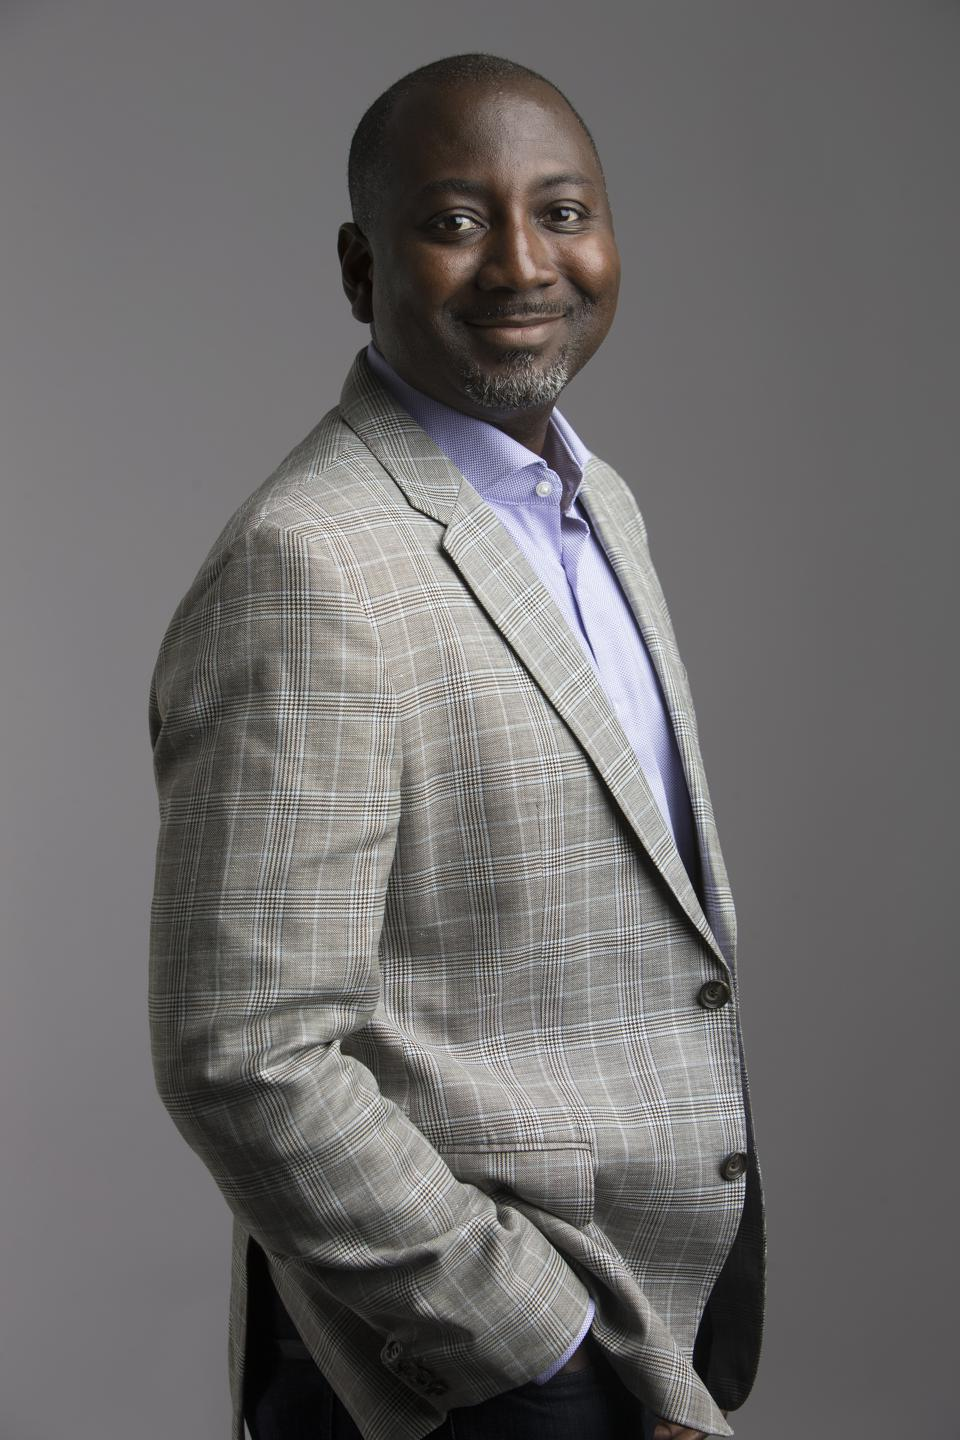 Photo Abe Ankumah, CEO of Nyansa, whose company was acquired by VMware.